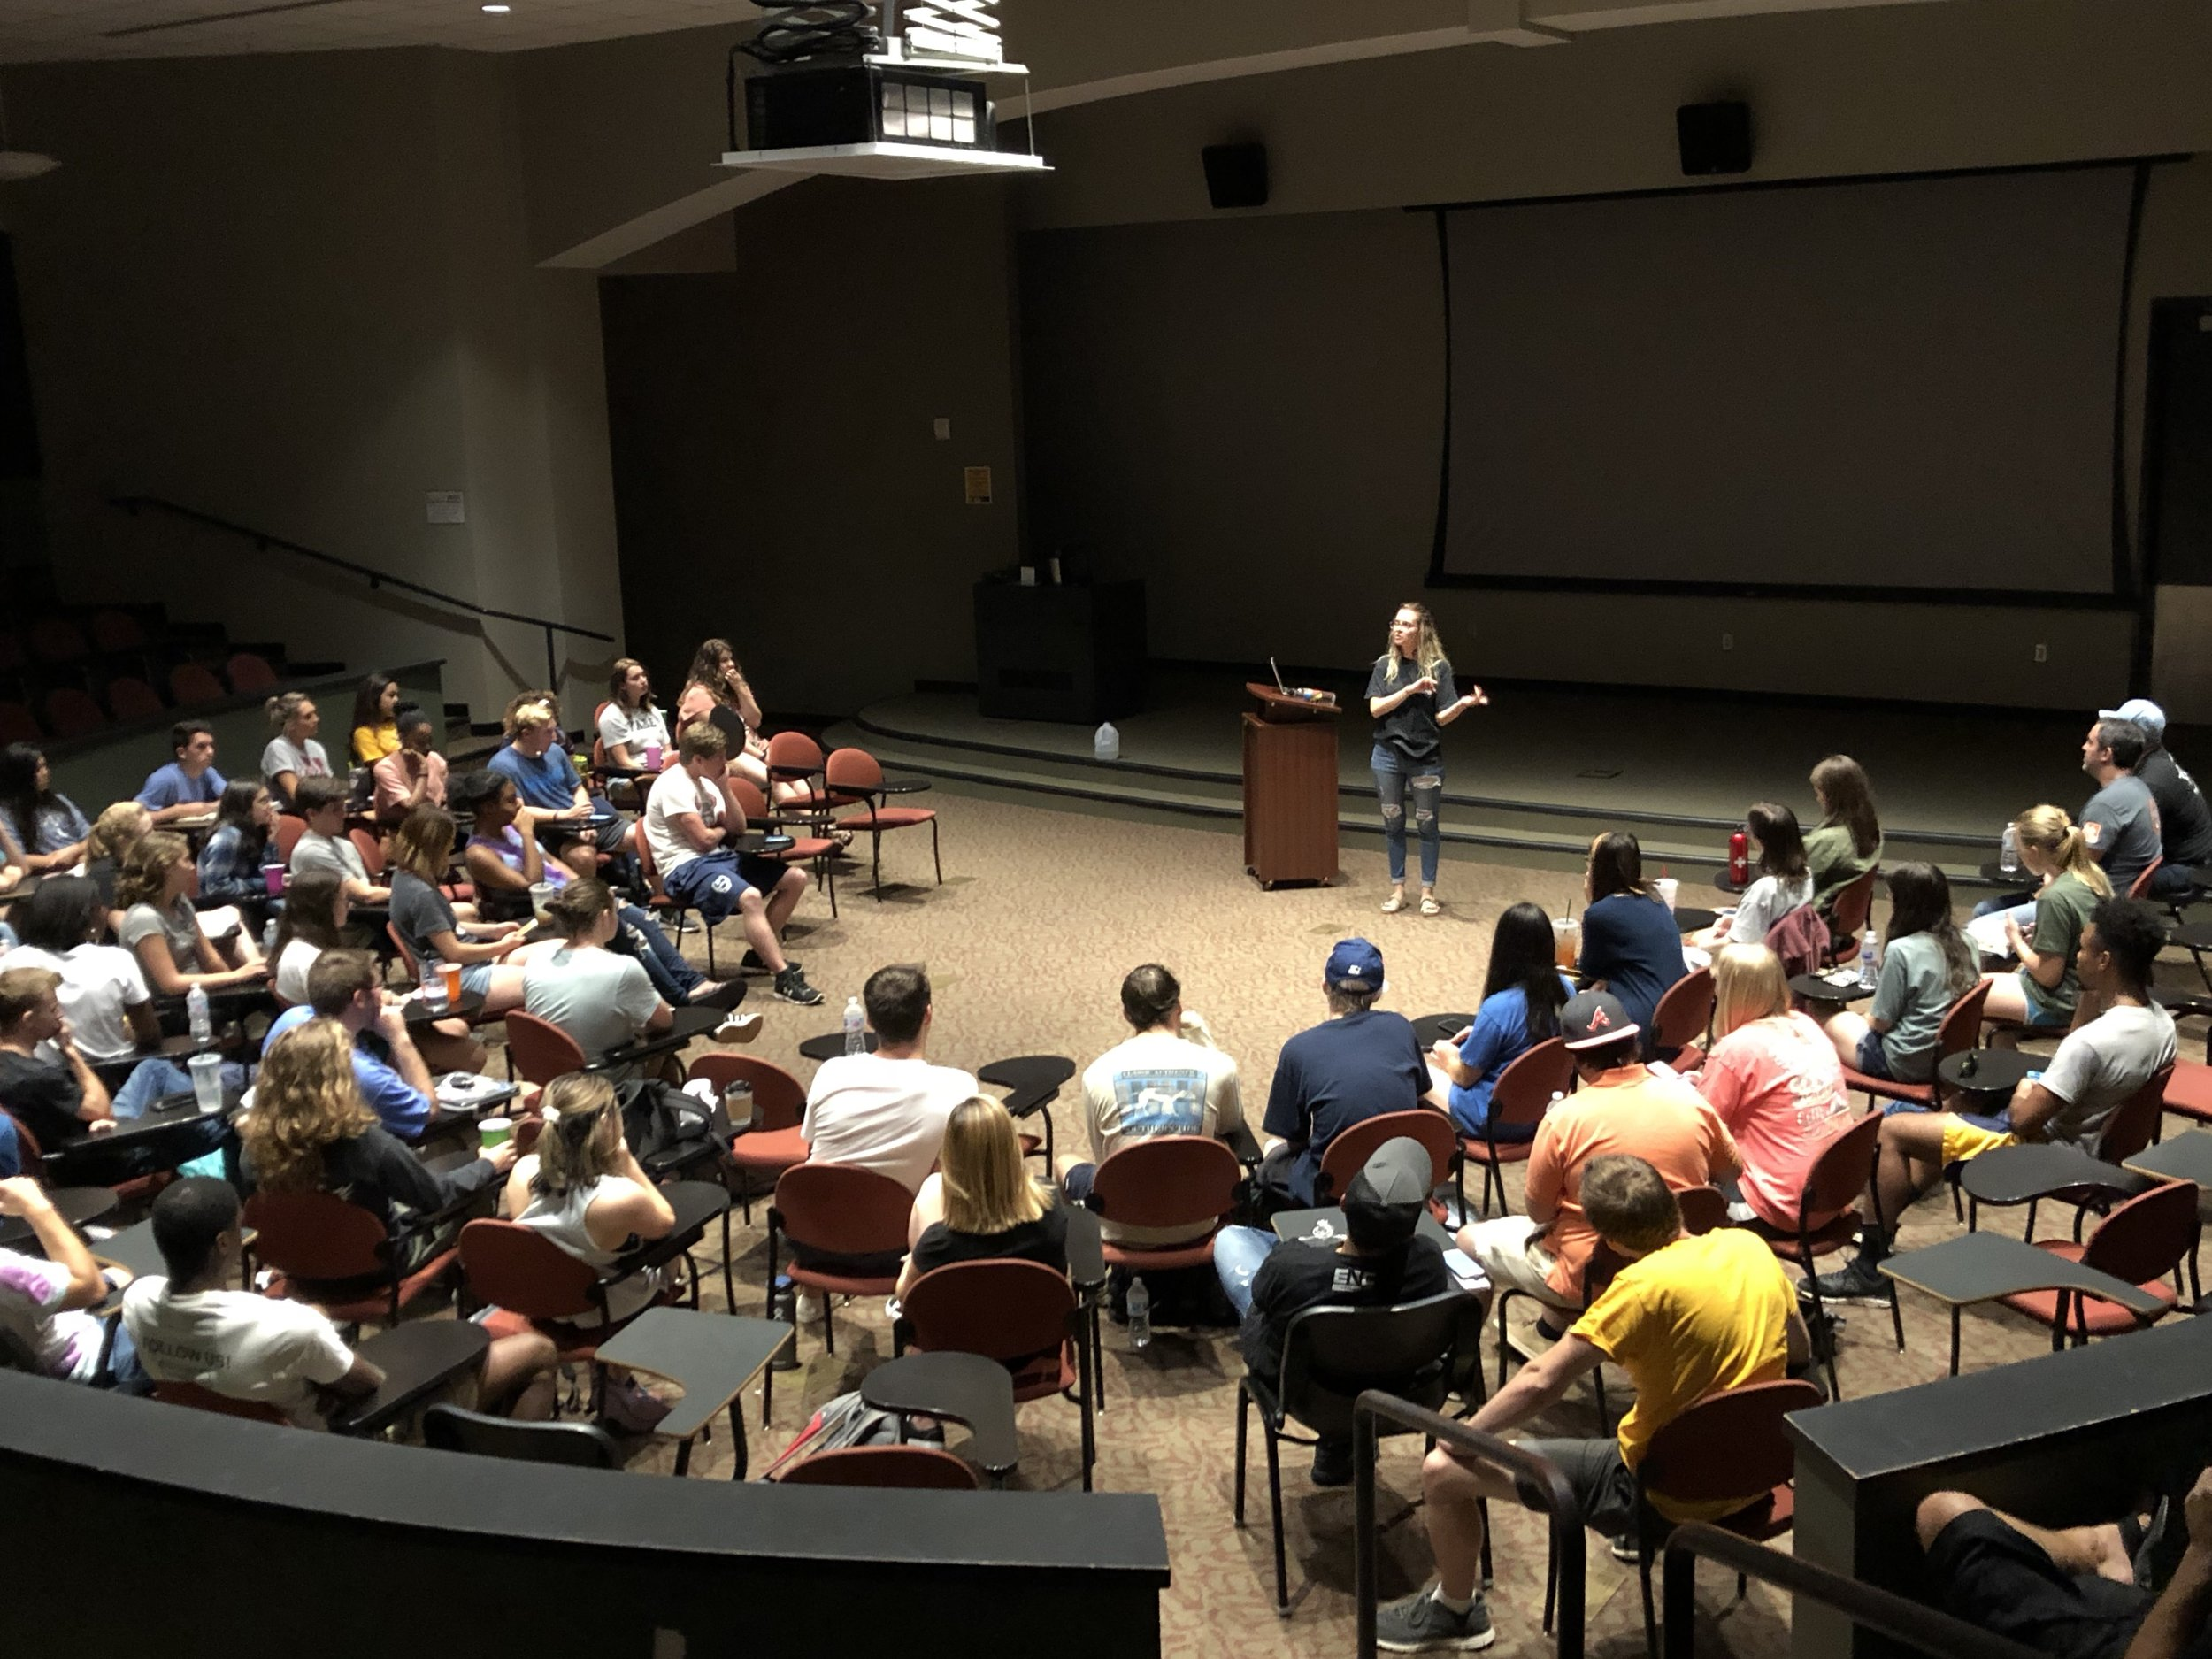 Weekly Campus Meeting - Every week at Kennesaw State University, students gather for the weekly meeting. It's fun, encouraging, and provides a powerful way for students to grow in their faith throughout the semester.When: Thursdays @ 8:00PMLocation: Changes depending on KSU